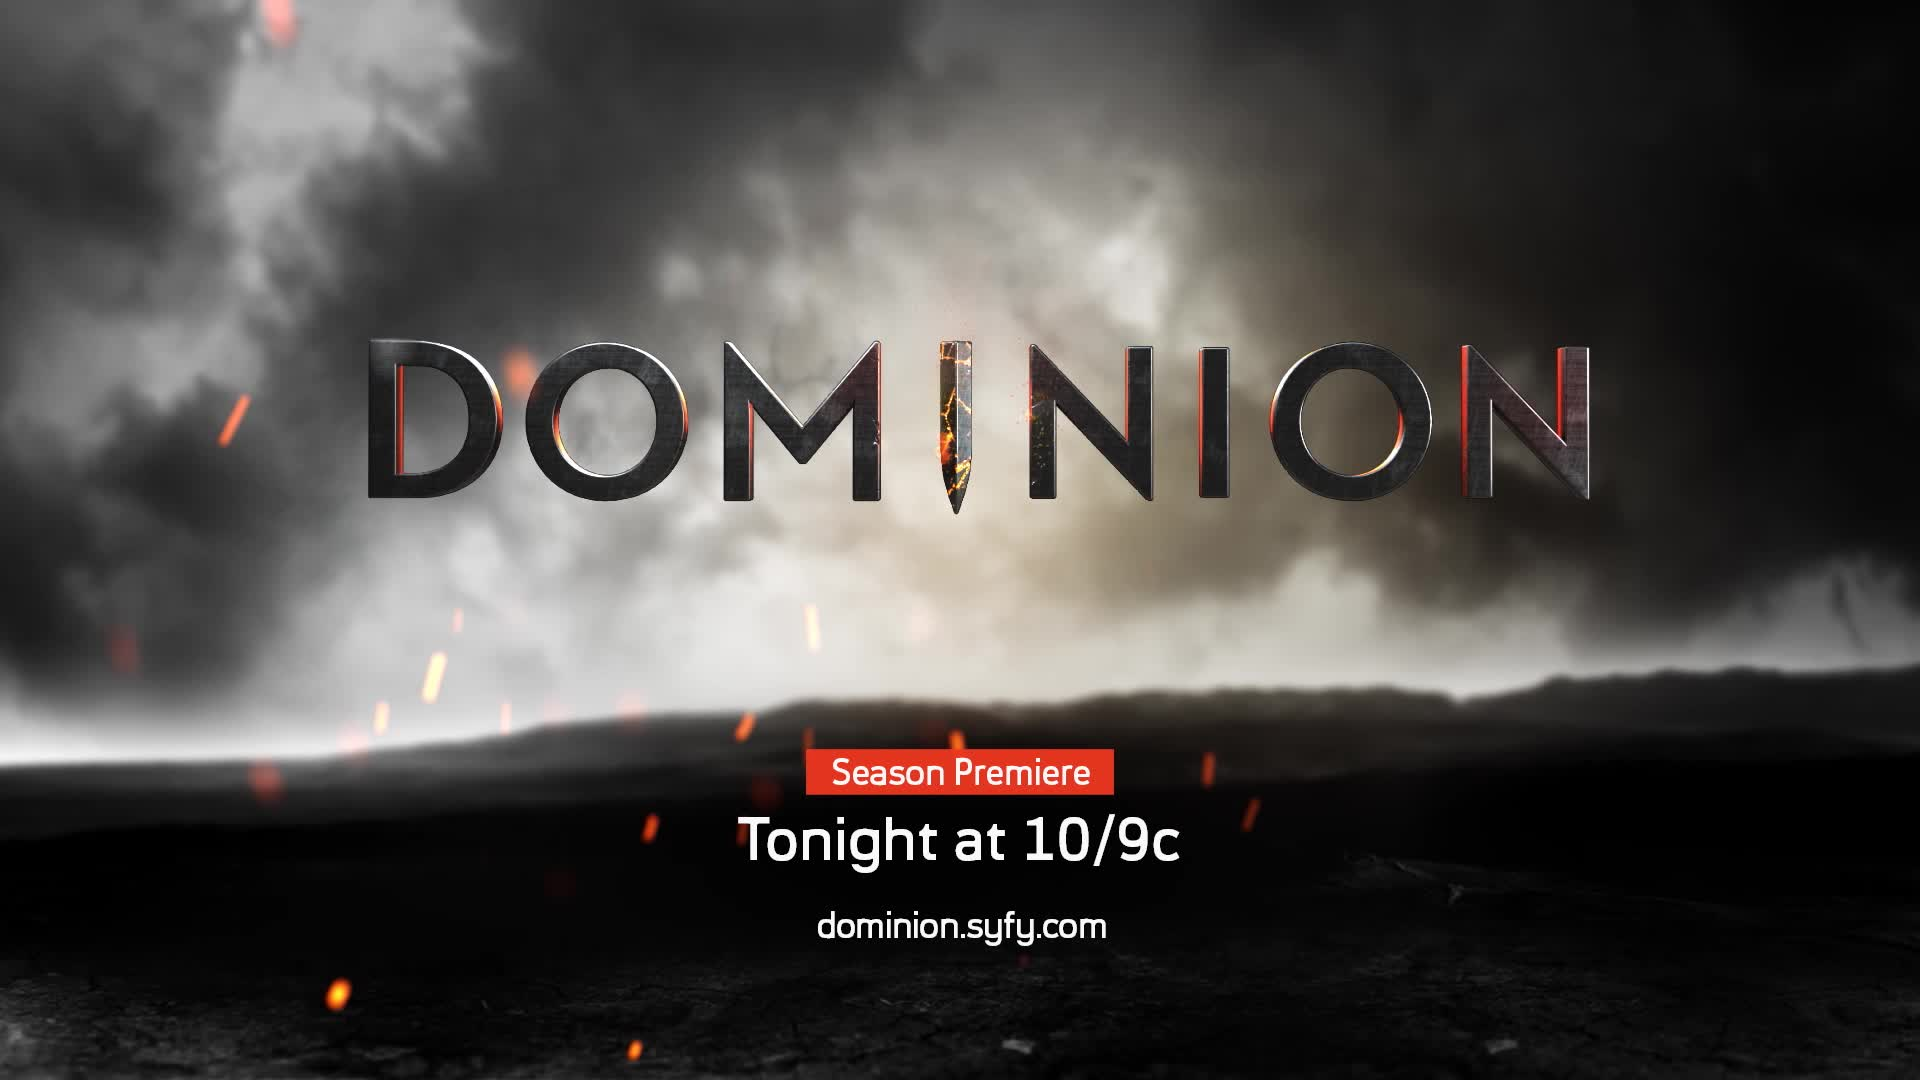 Dominion movie free download hd